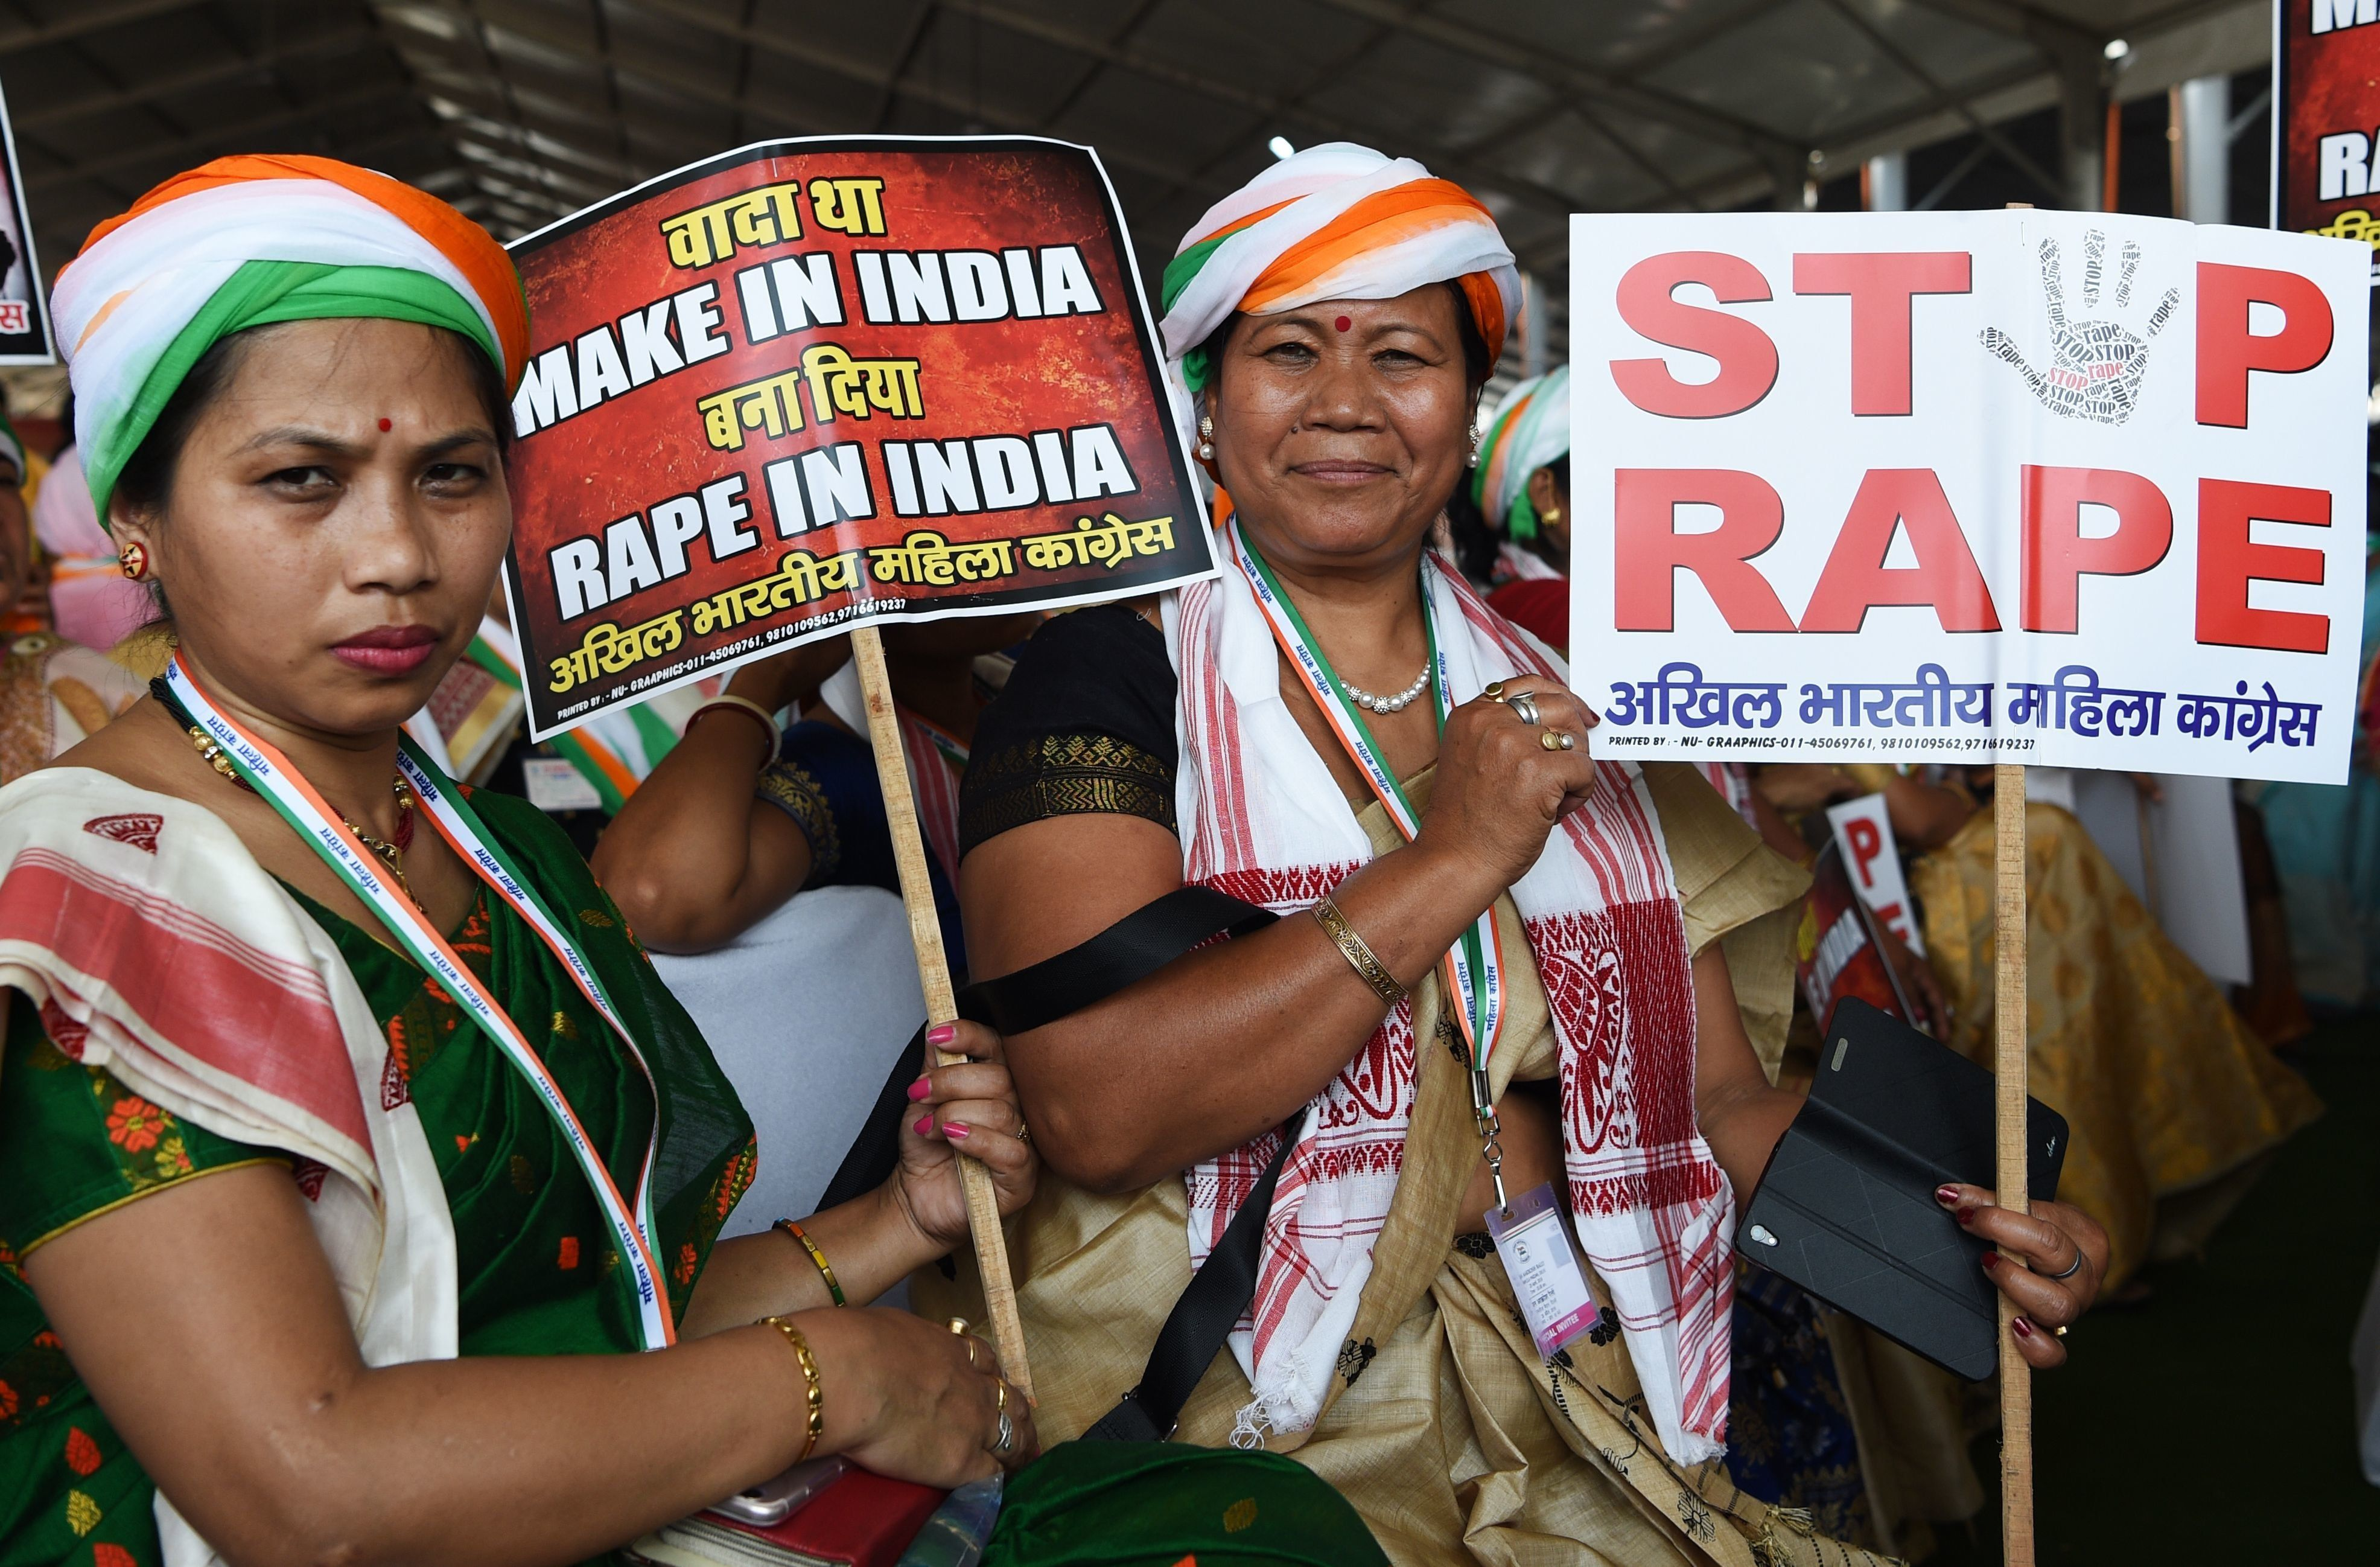 Supporters of President of the Indian National Congress Party Rahul Gandhi hold placards in reaction to the recent rape cases in India during a rally dubbed Jan Aakrosh Rally (public outrage), in New Delhi on April 29, 2018. - The rally was Gandhi's first in the national capital since taking over as the party chief last year. The rally was called to launch a protest against Prime Minister Narendra Modi government's failures and corruption. (Photo by Sajjad HUSSAIN / AFP)        (Photo credit should read SAJJAD HUSSAIN/AFP/Getty Images)